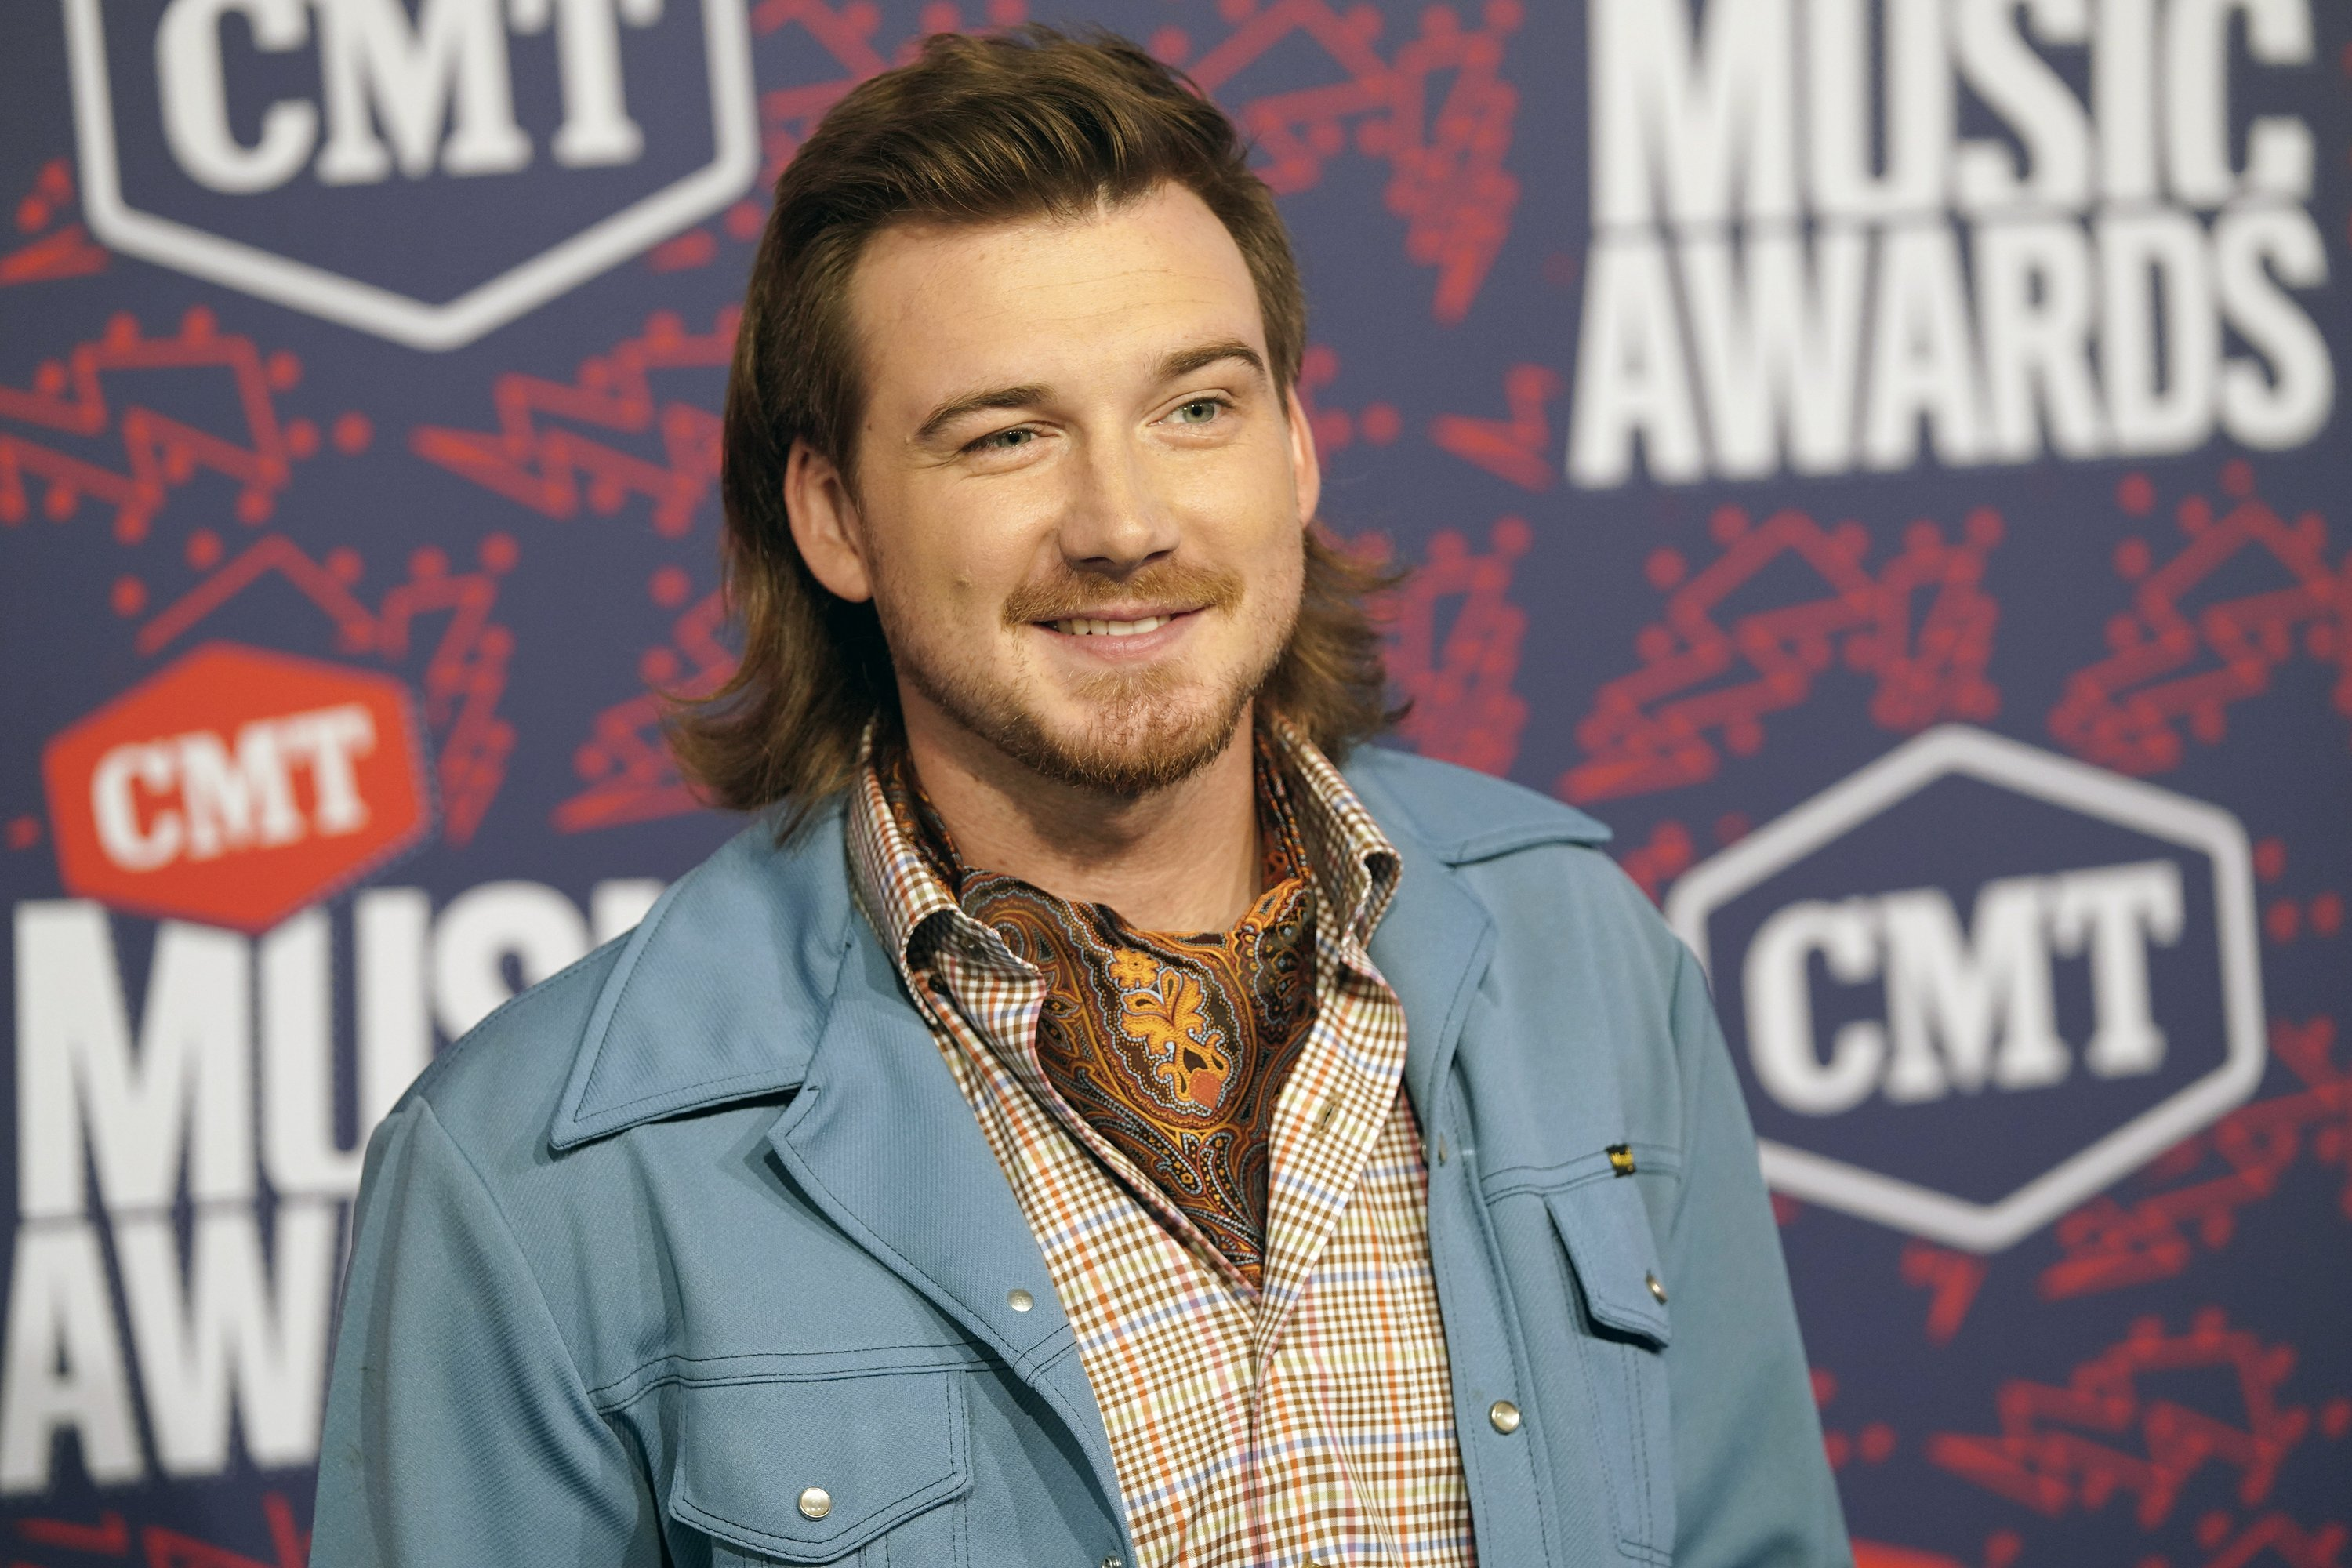 Singer Morgan Wallen Suspended From Label After Racial Slur